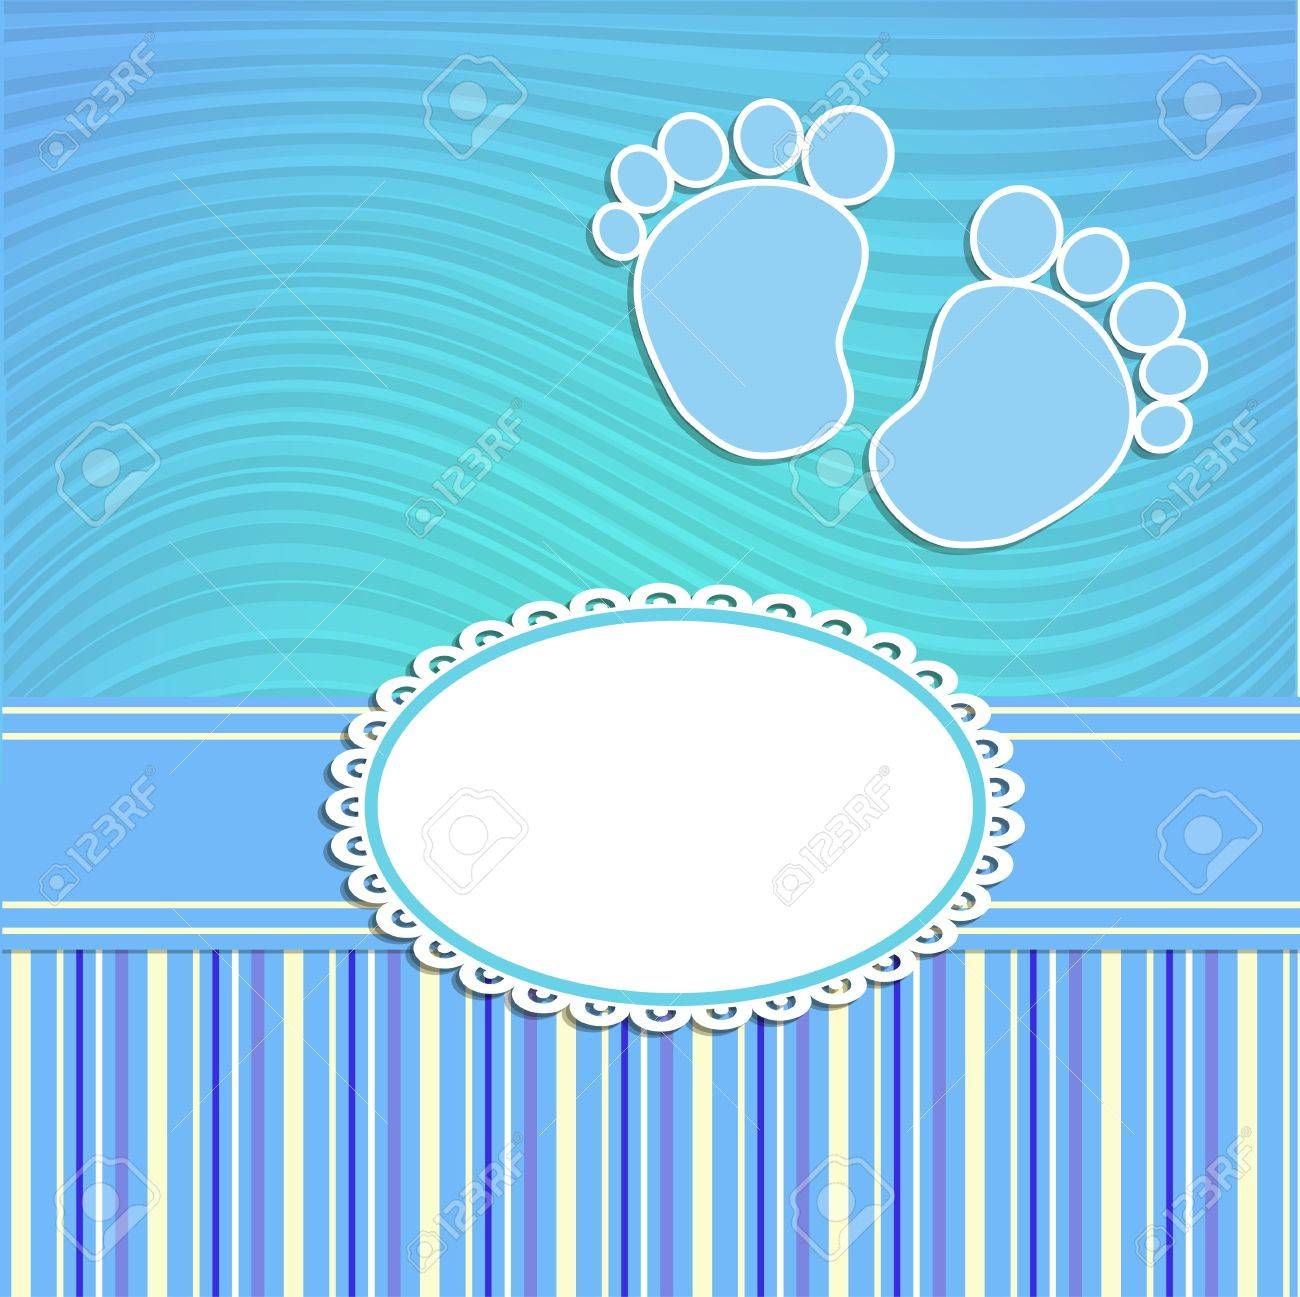 Card for newborn in scrabbook style or baby shower invitation - 22098122